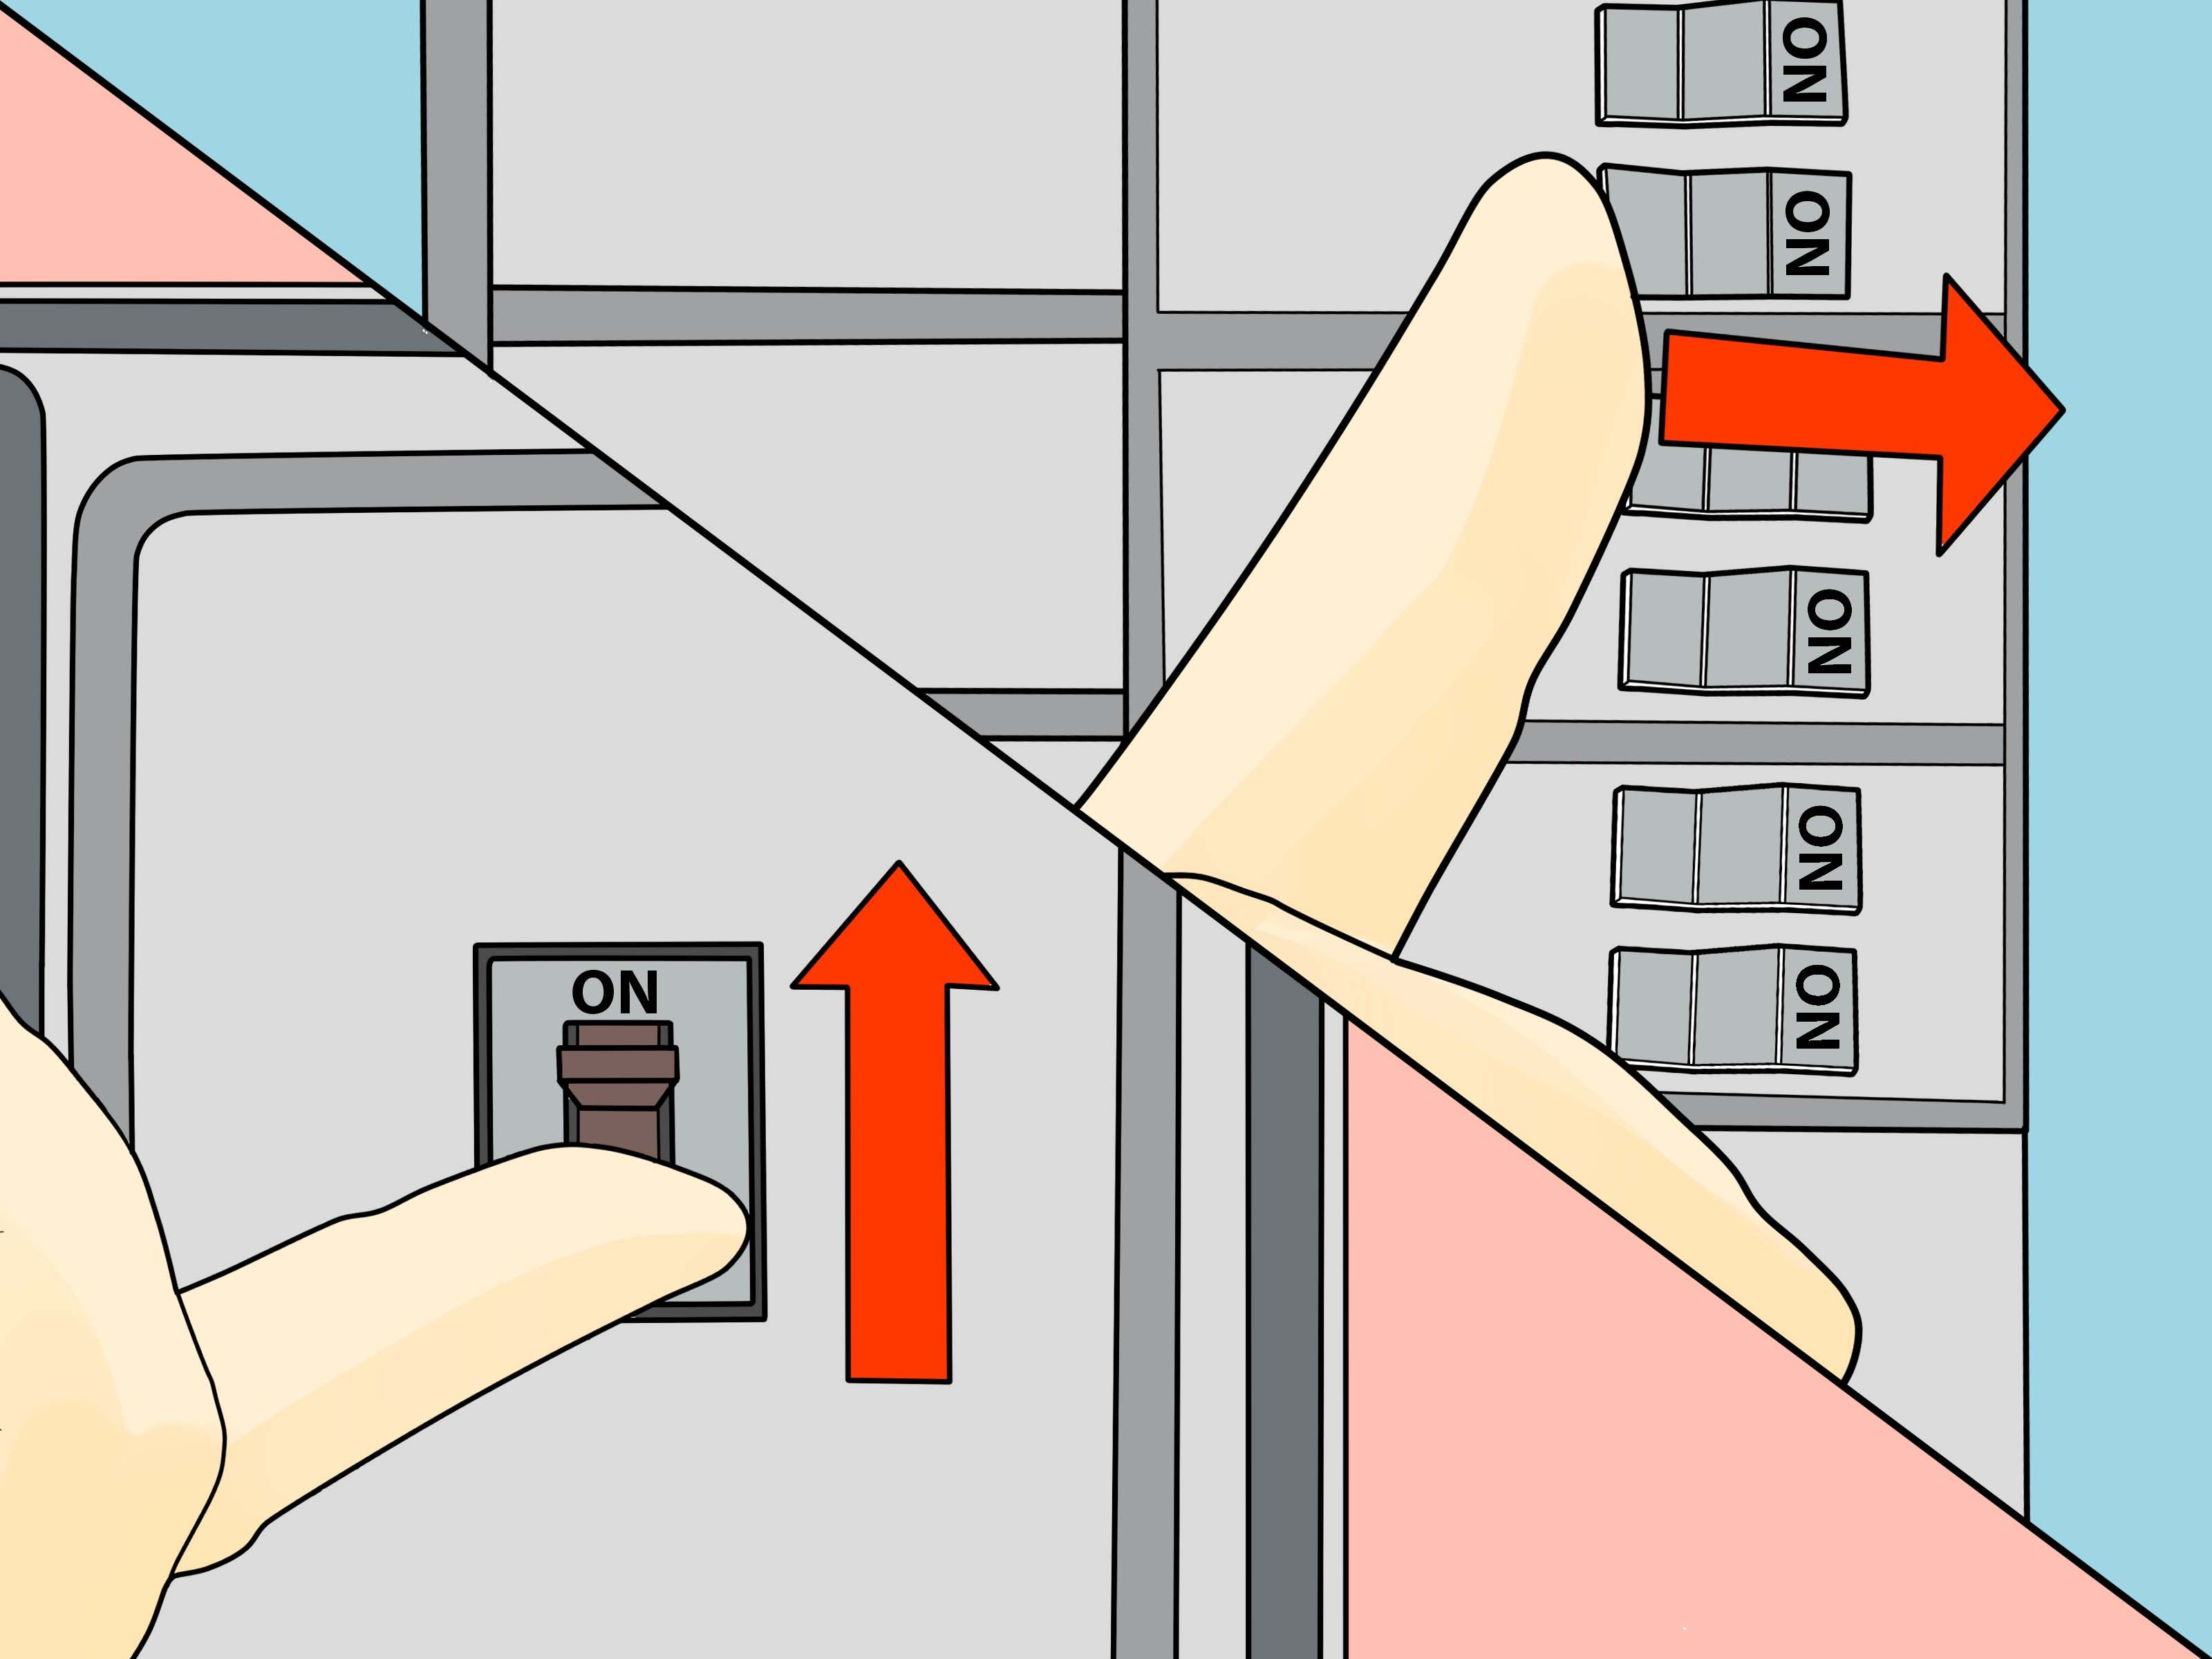 How To Change A Circuit Breaker Electrical Breakers Breakers Cheap Modern Furniture